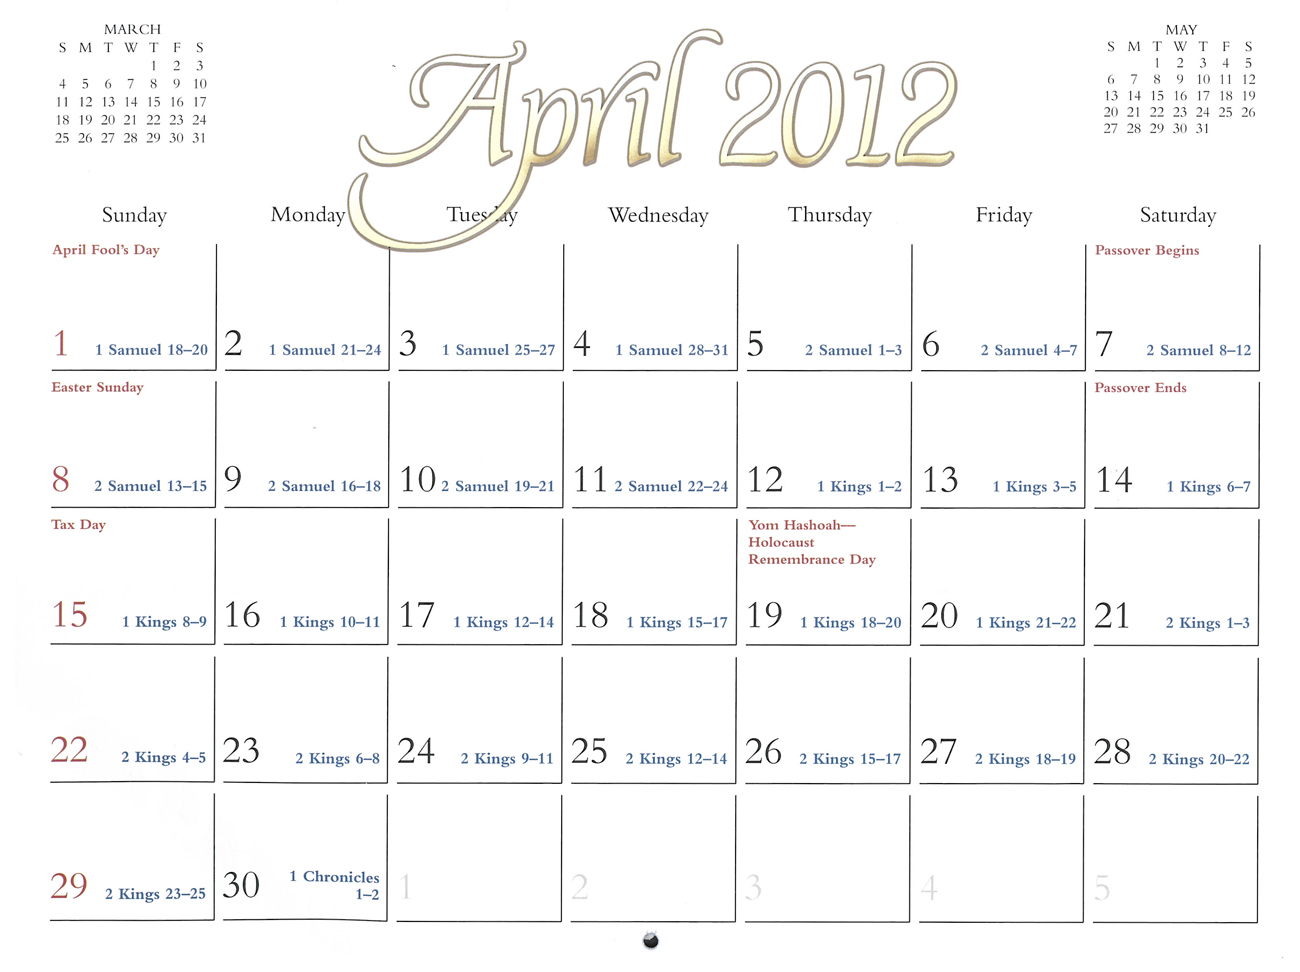 2012 Prophecy Calendar: April - Paul's Letter to the Churches in Galatia